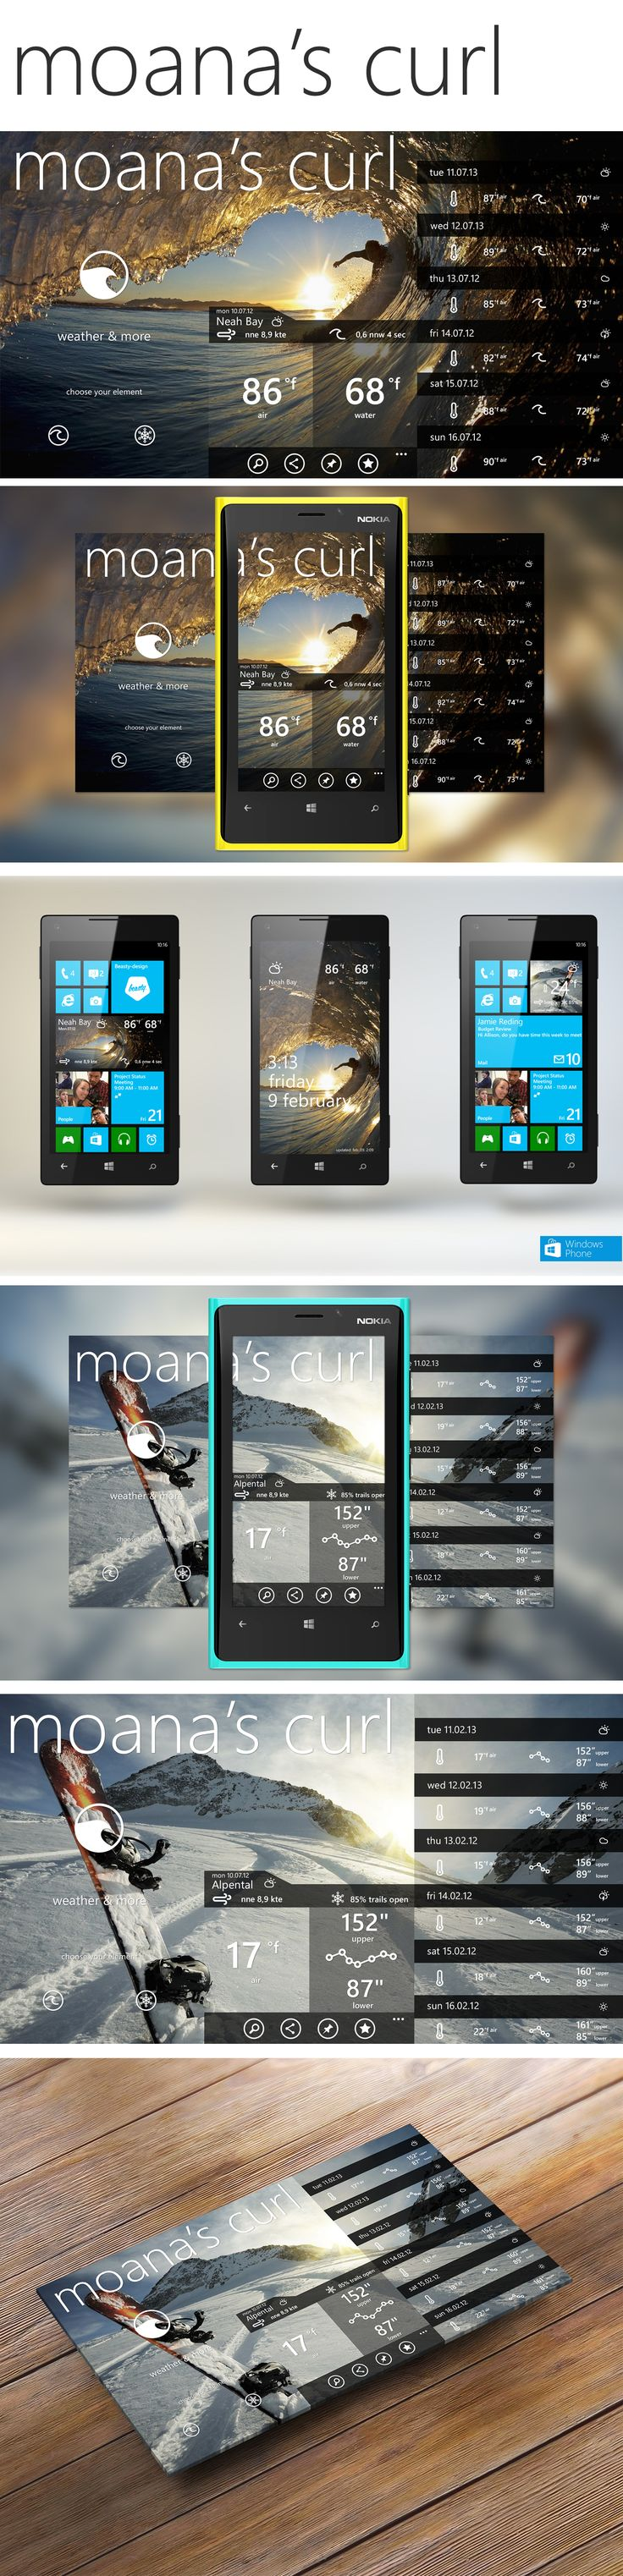 moana's curl - app for weather contest | windows phone 8